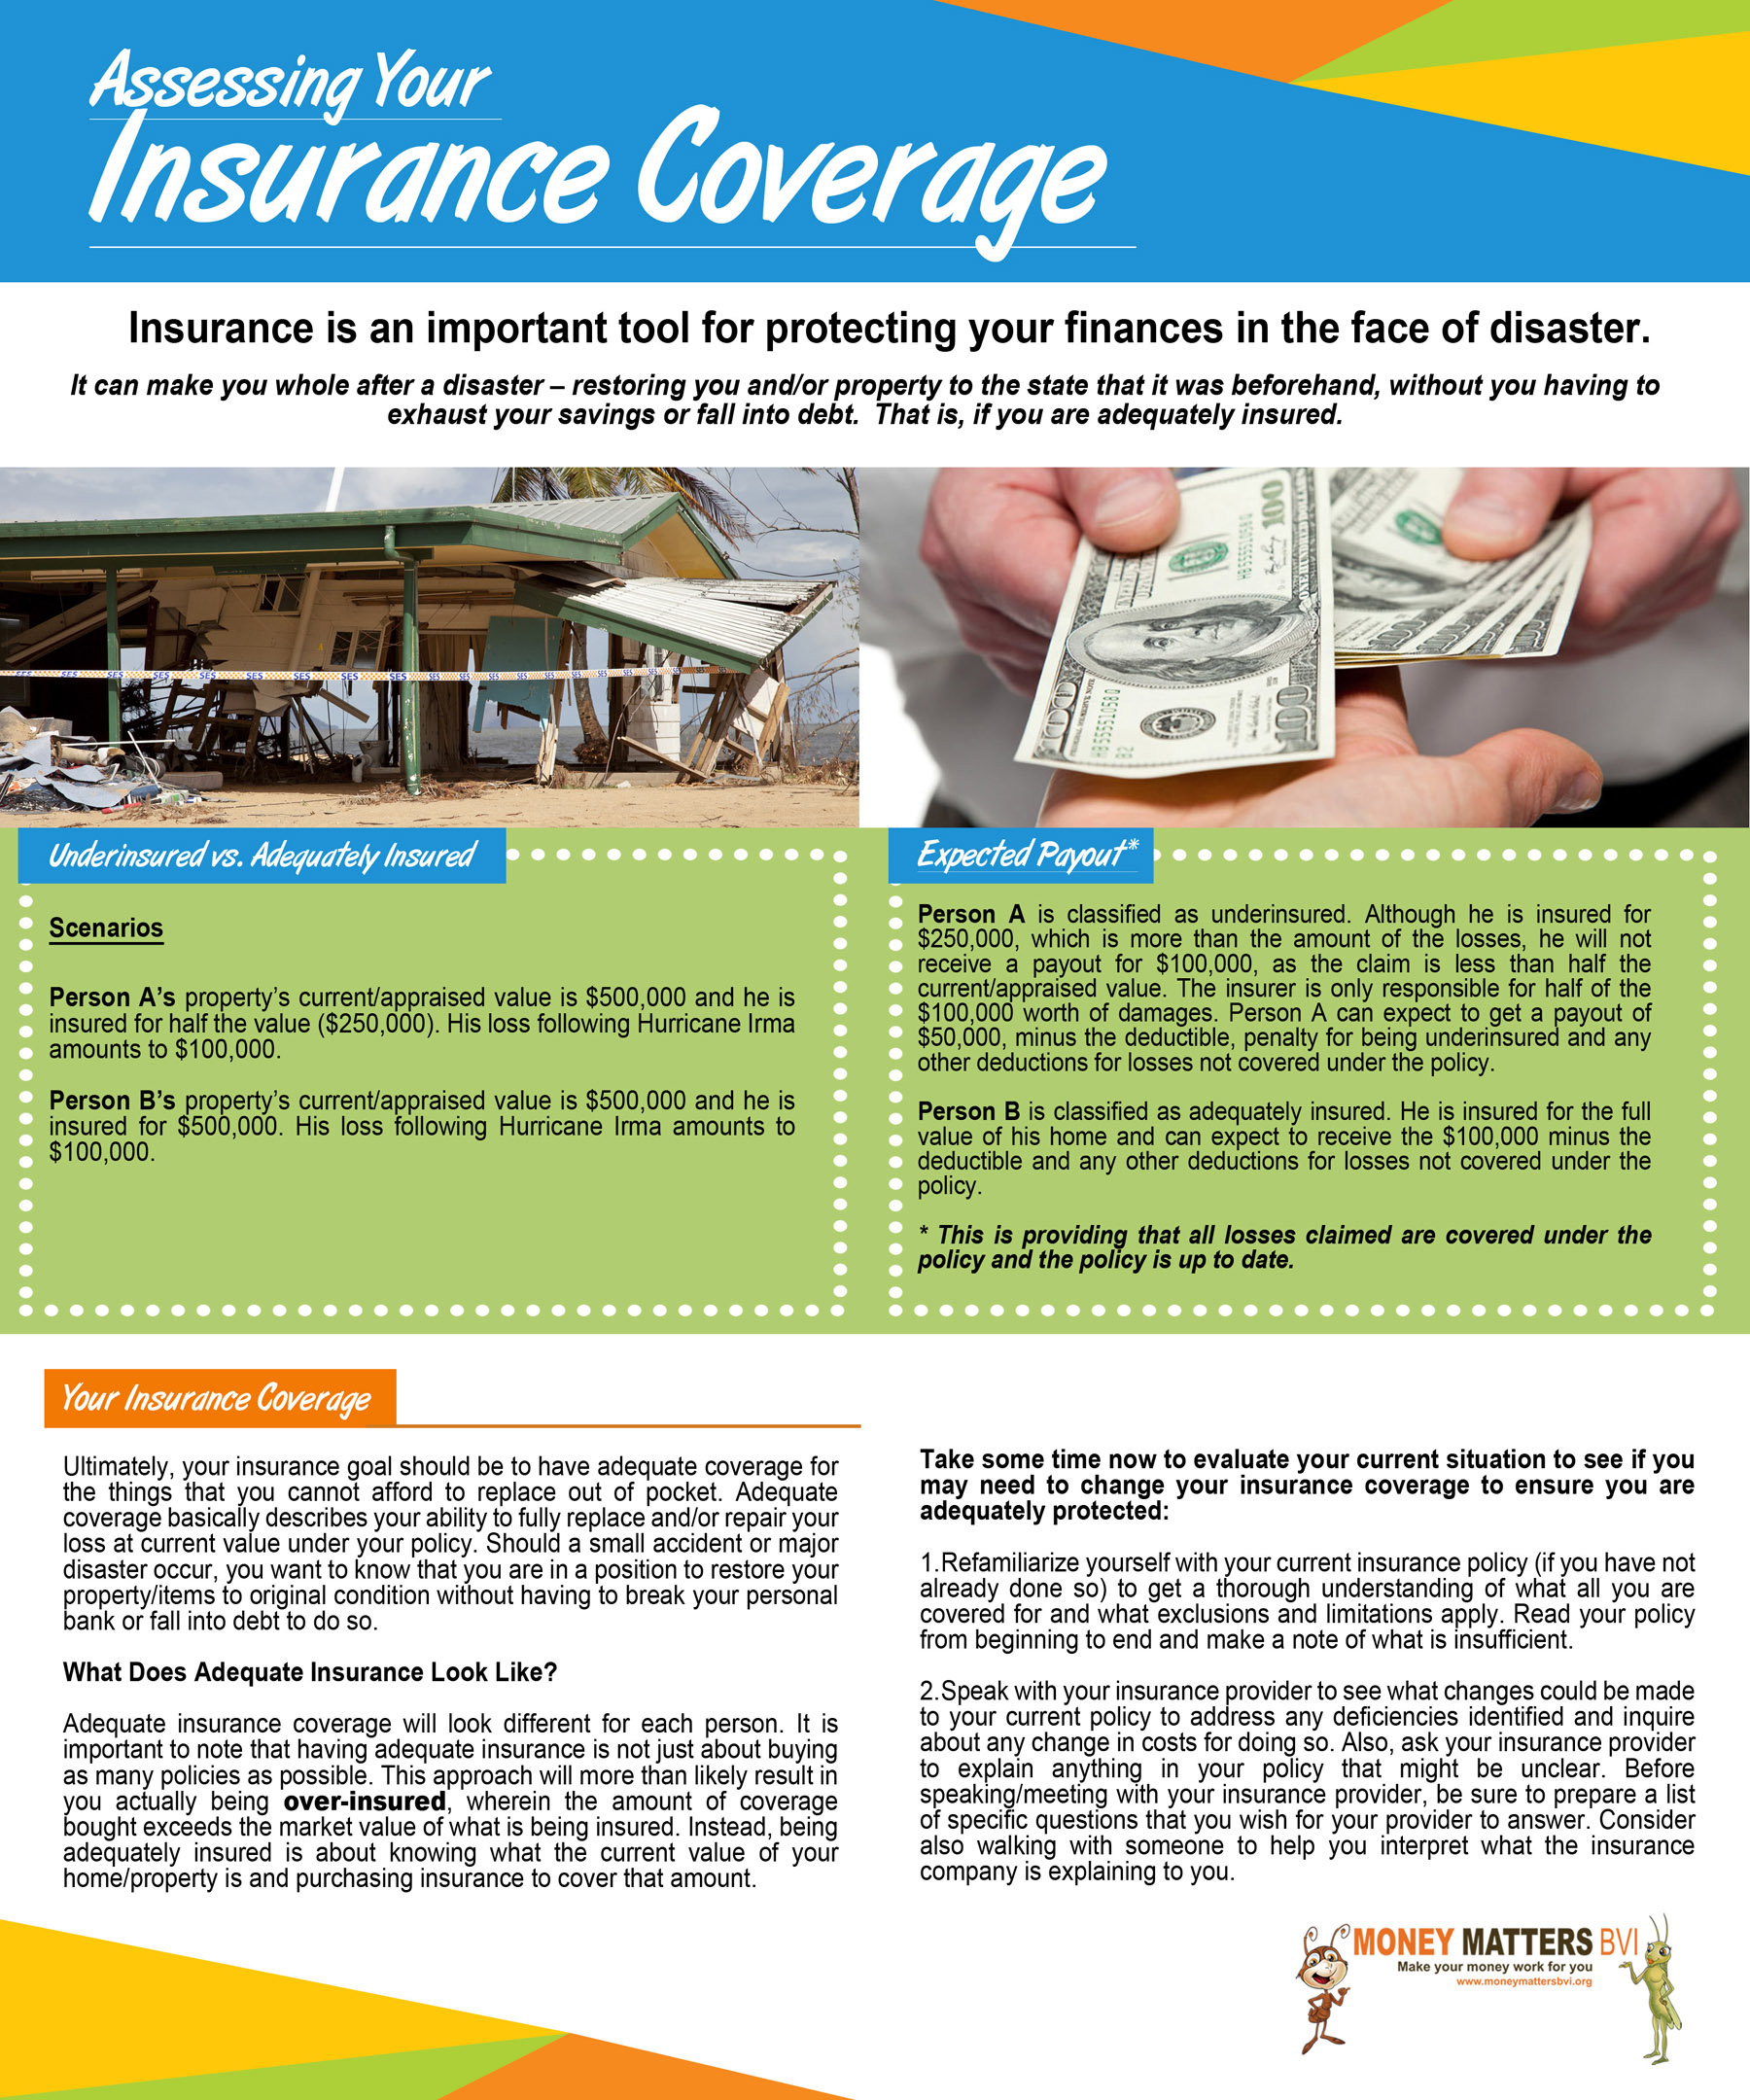 Assessing Your Insurance Coverage 2